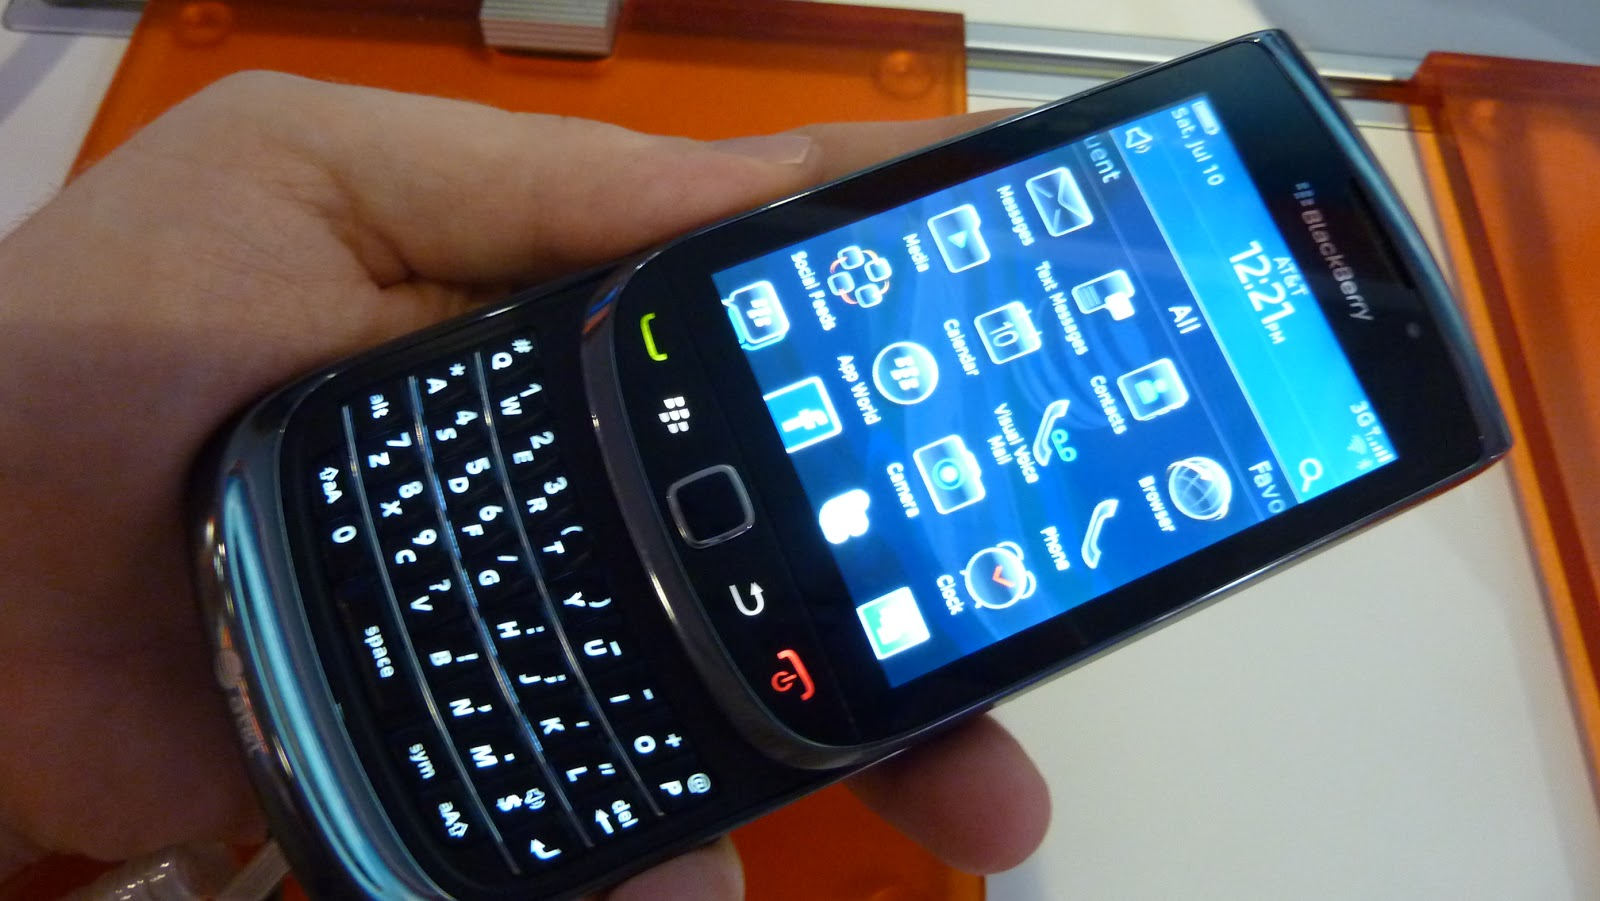 Imobile Phones Blackberry Torch 9800 FeaturesDemoReview